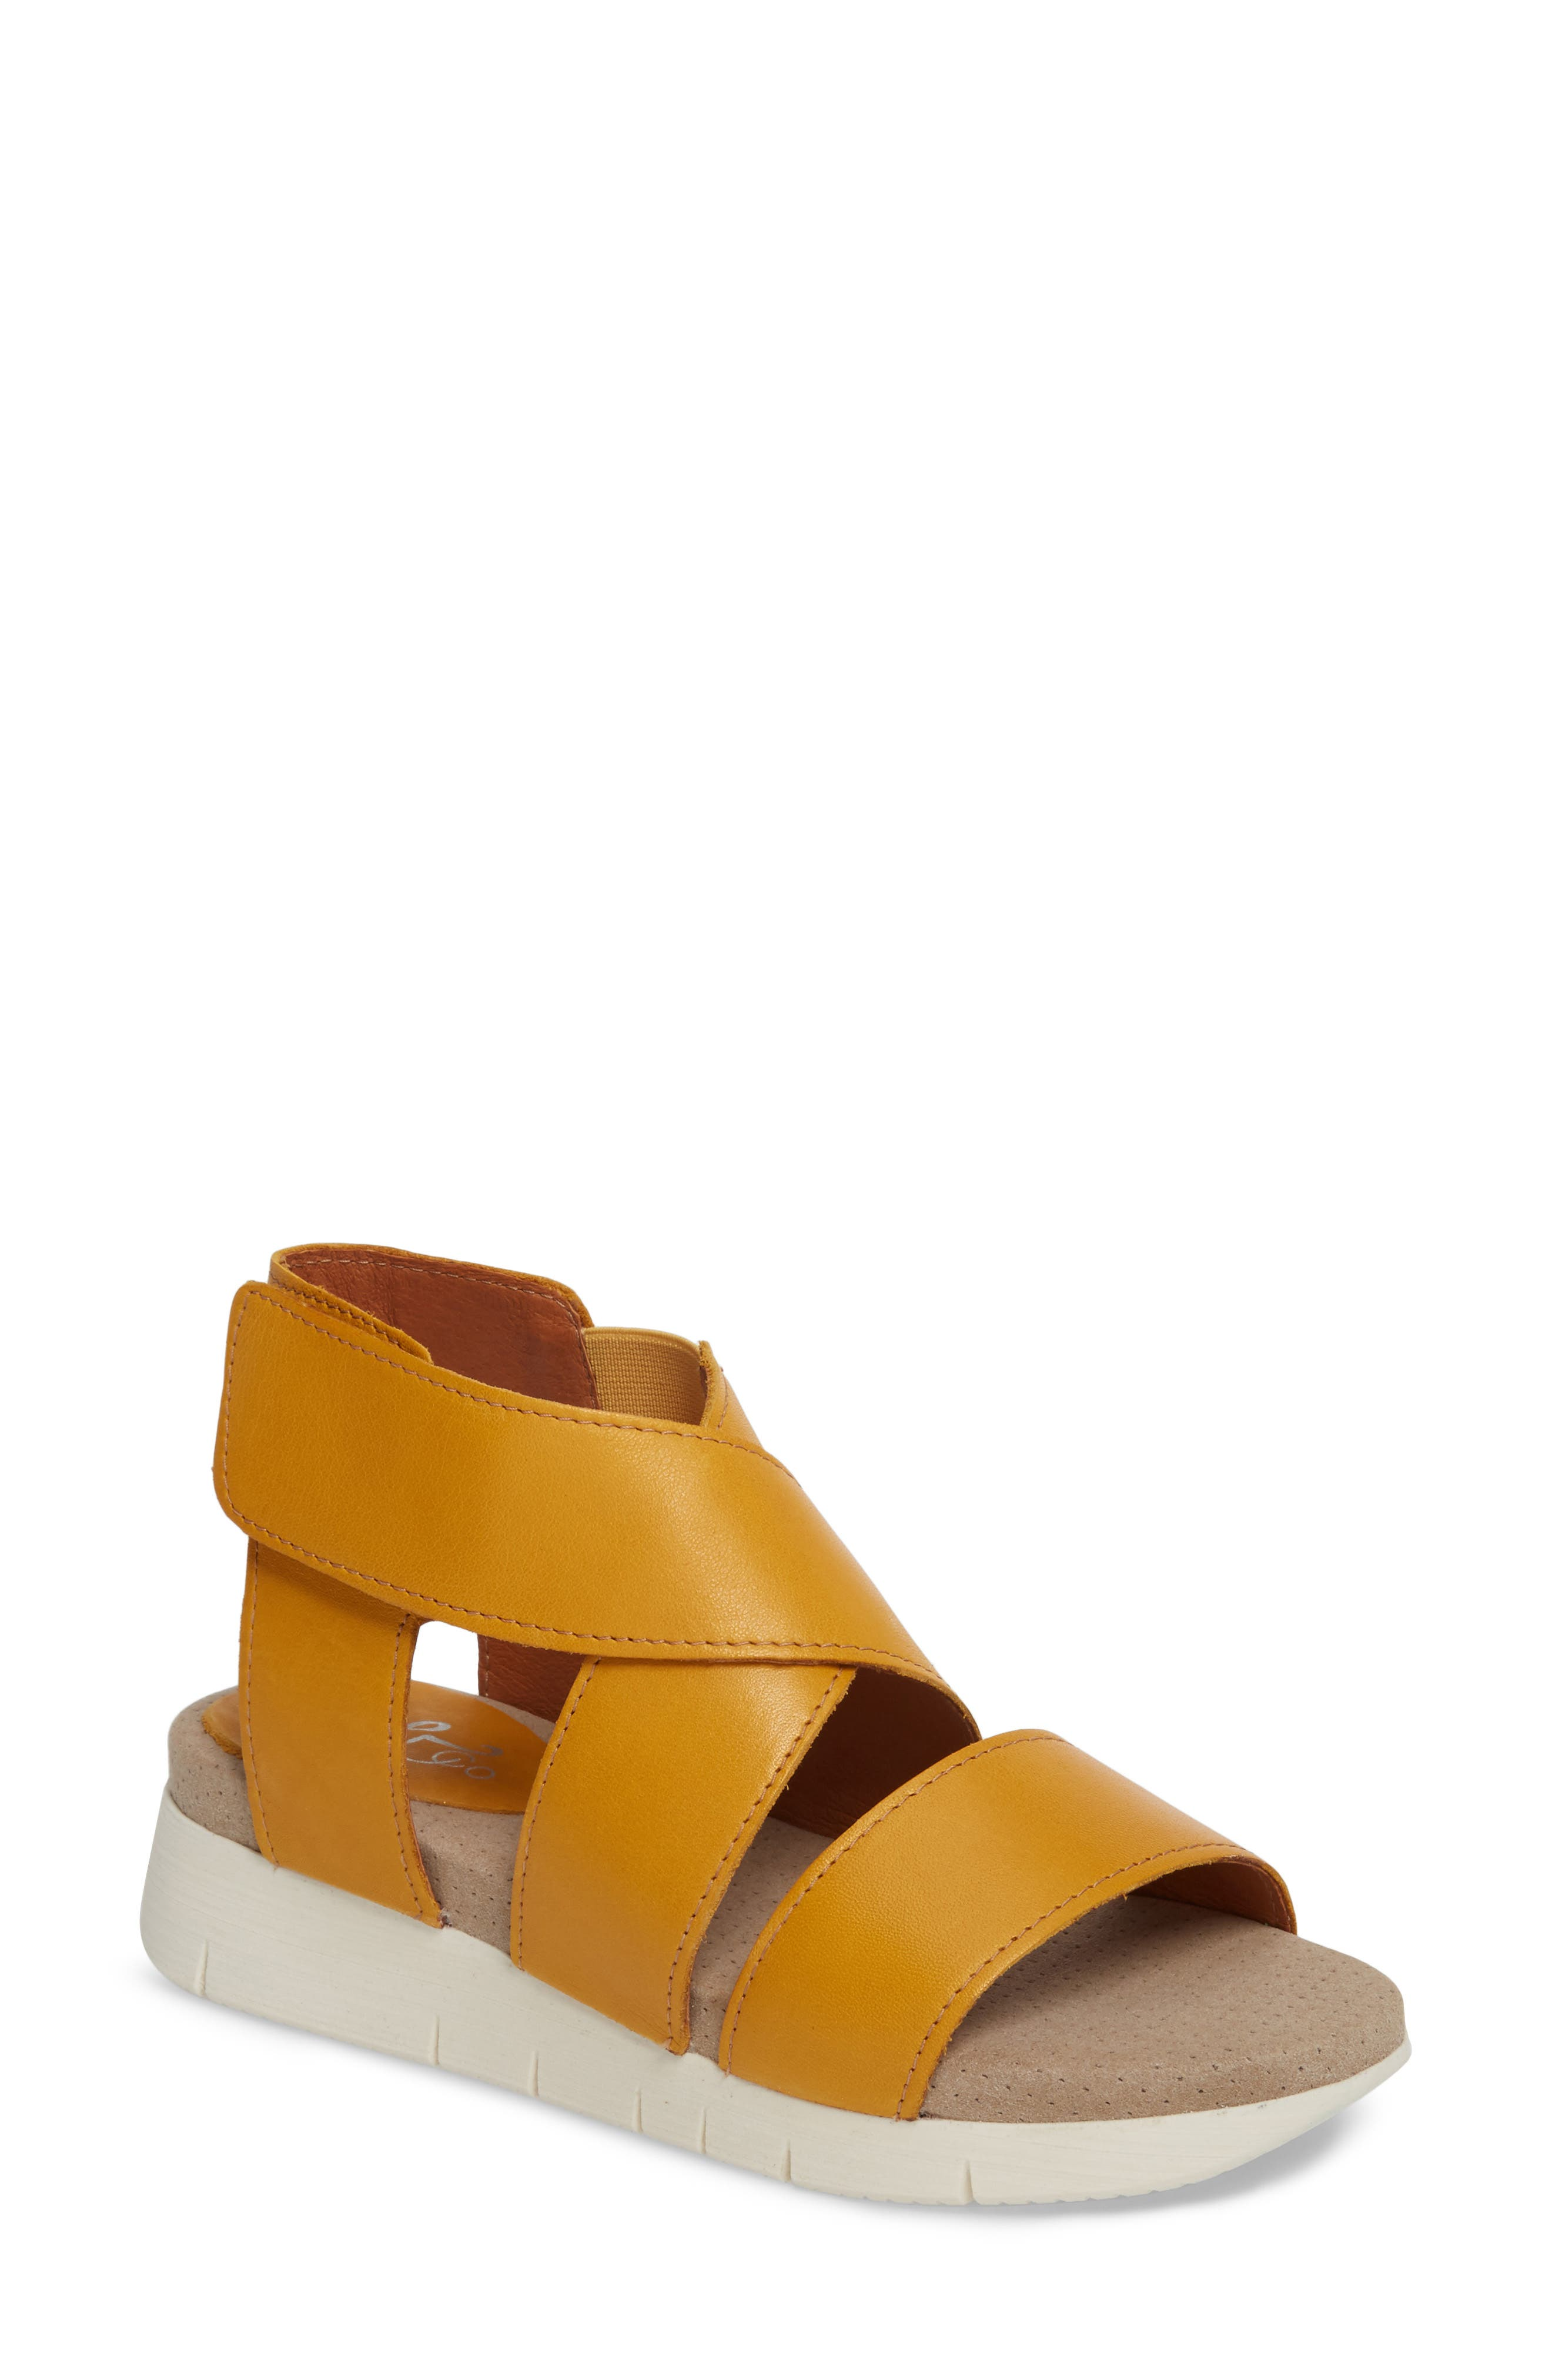 Bos. & Co. Piper Wedge Sandal - Yellow